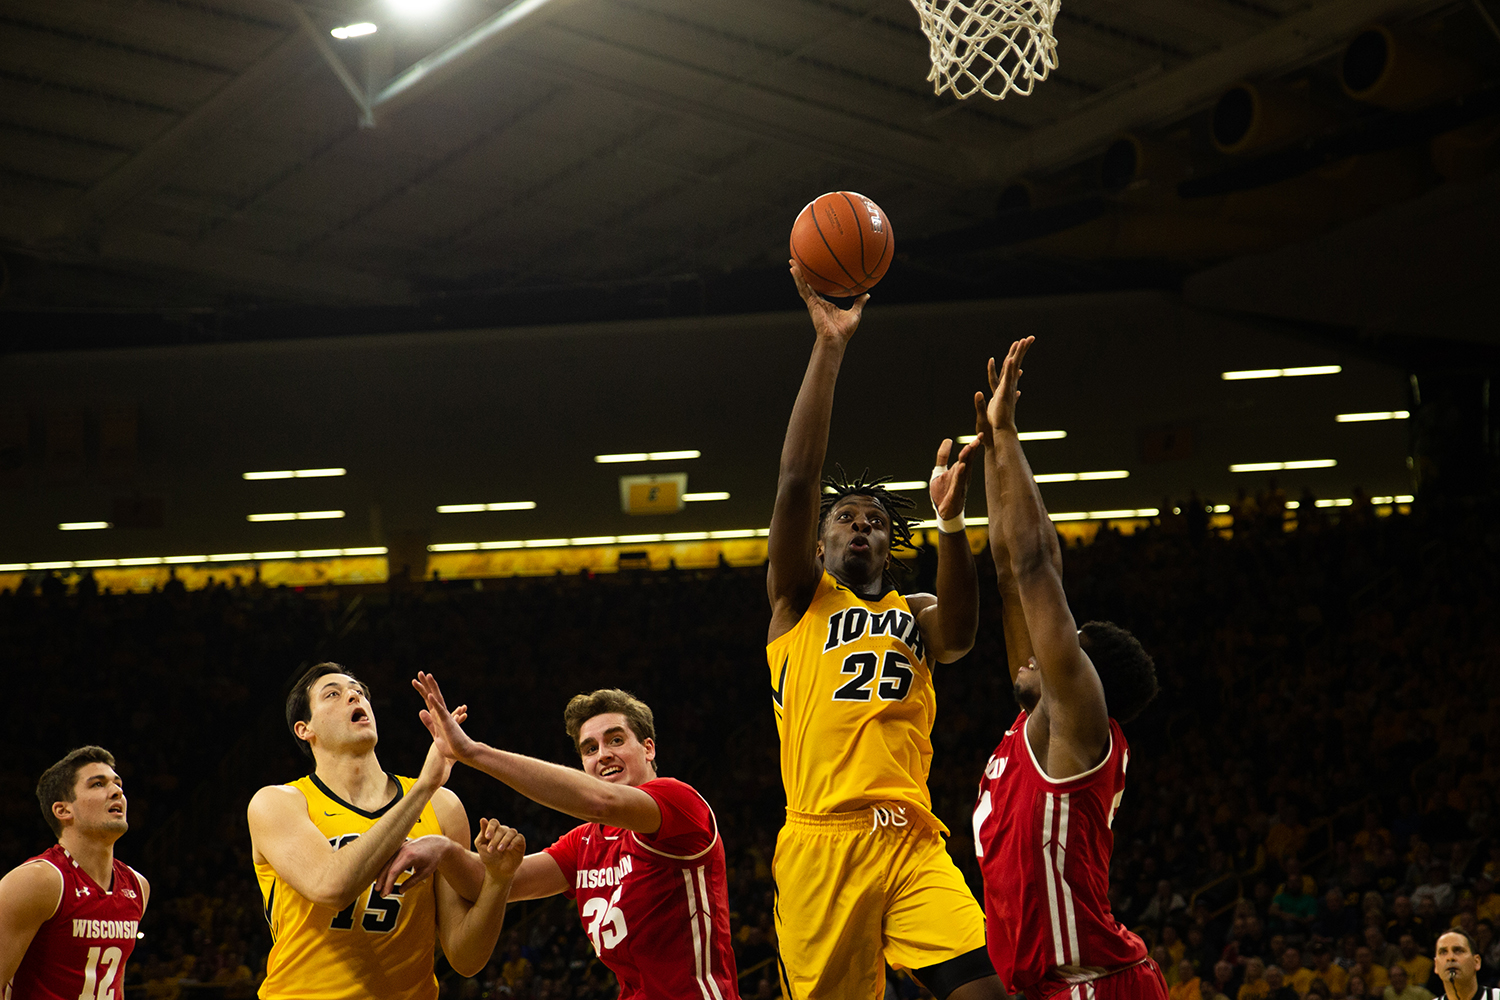 Iowa forward Tyler Cook shoots the ball during Iowa's game against Wisconsin at Carver-Hawkeye Arena on November 30, 2018. The Hawkeyes were defeated by the Badgers, 72-66.(Megan Nagorzanski/The Daily Iowan)